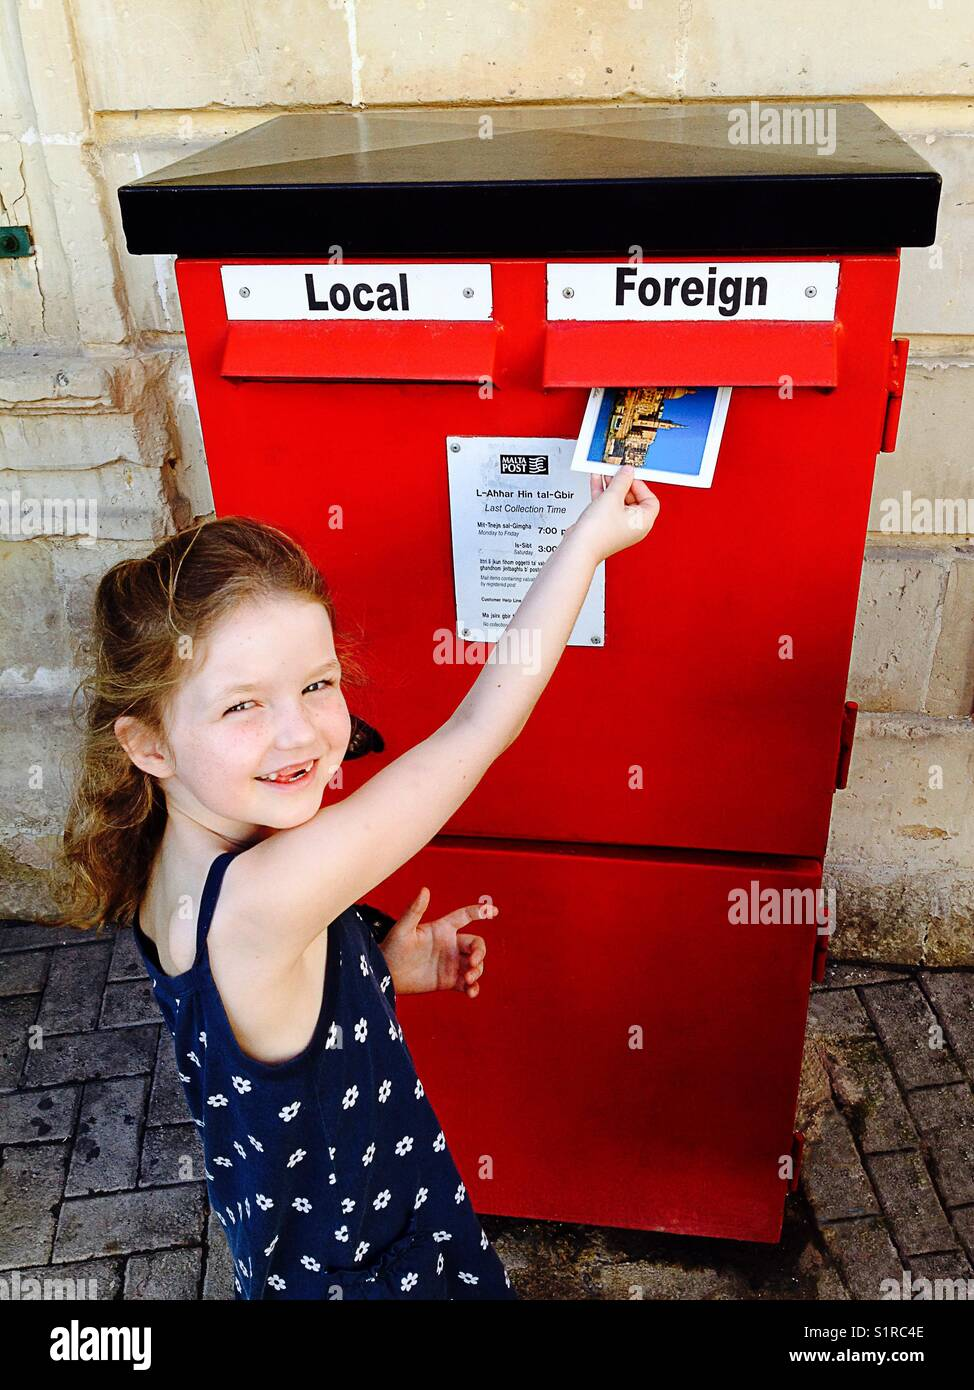 Child/ kid /girl posting a postcard into a letterbox with a Foreign destination marked slot. Malta. - Stock Image